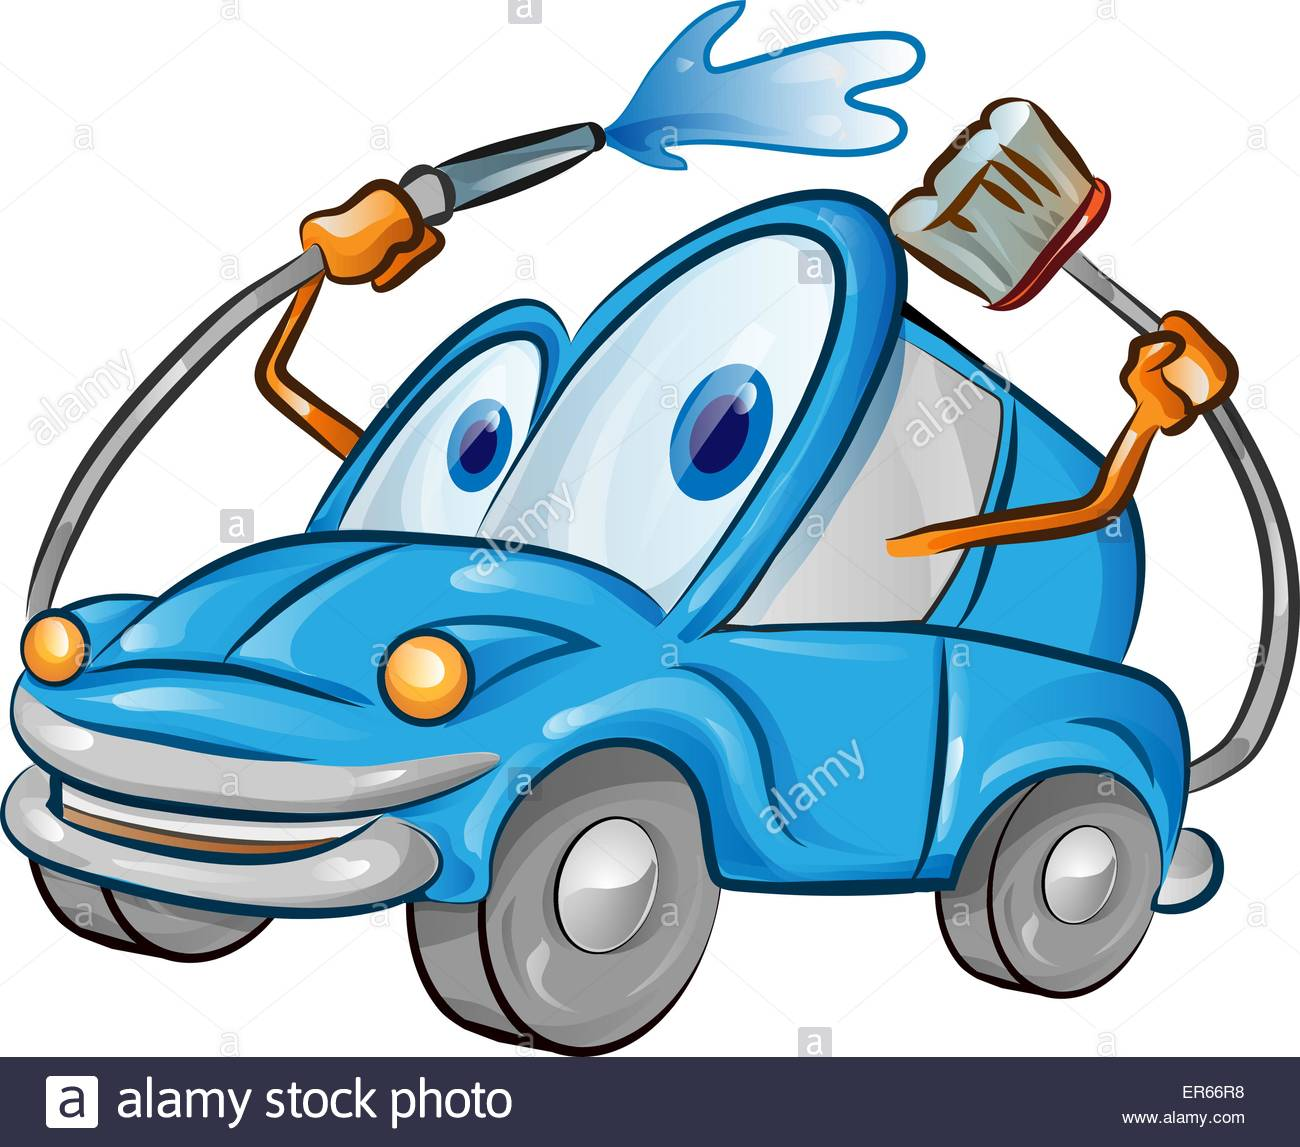 car wash cartoon stock vector art illustration vector image rh alamy com car wash cartoons youtube car wash cartoon pictures